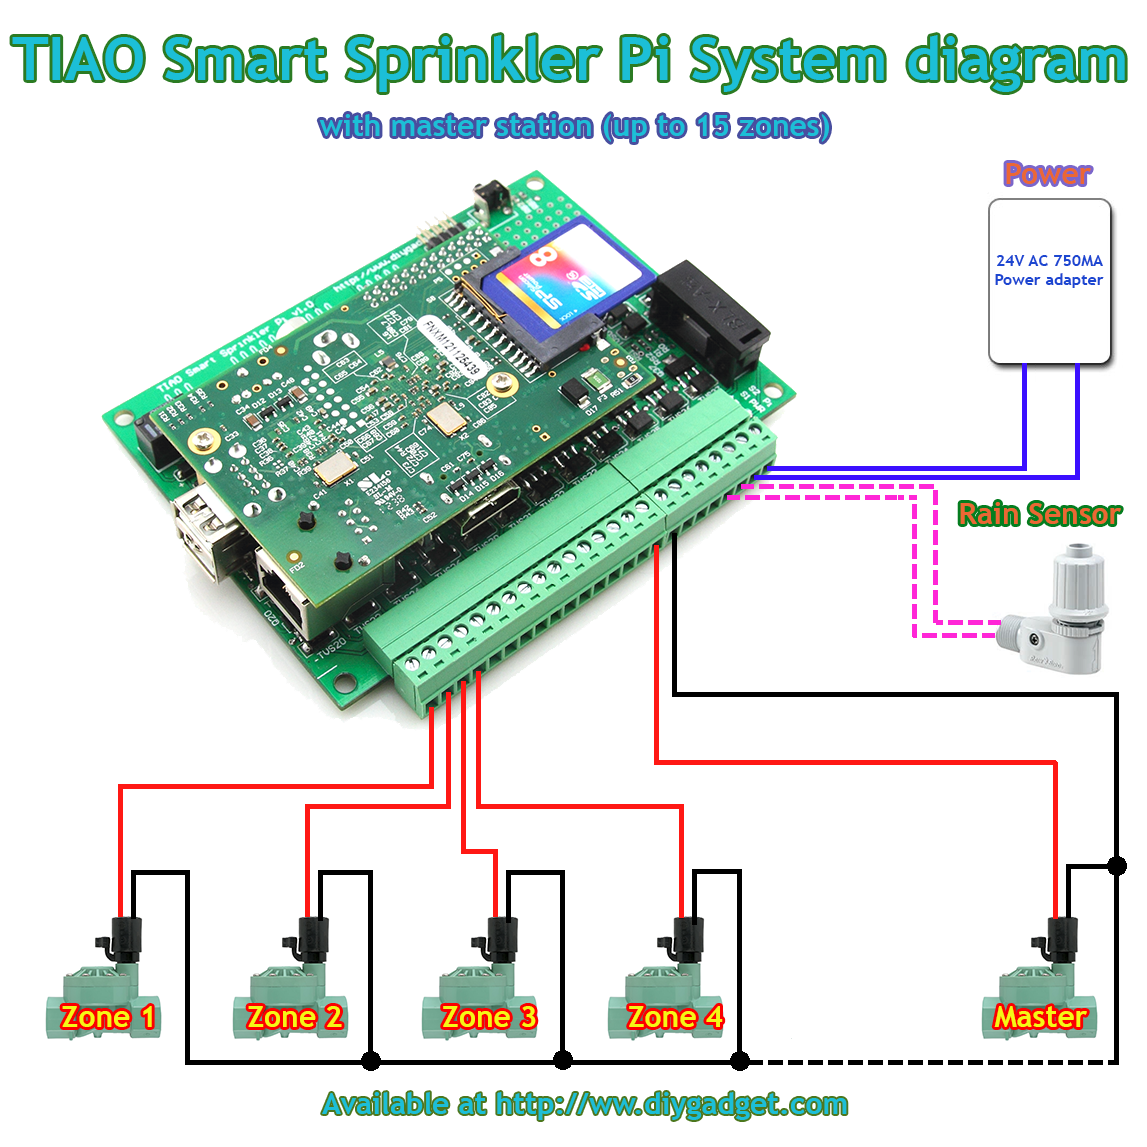 Tiao Smart Sprinkler Pi System Connection Diagram Tiao S